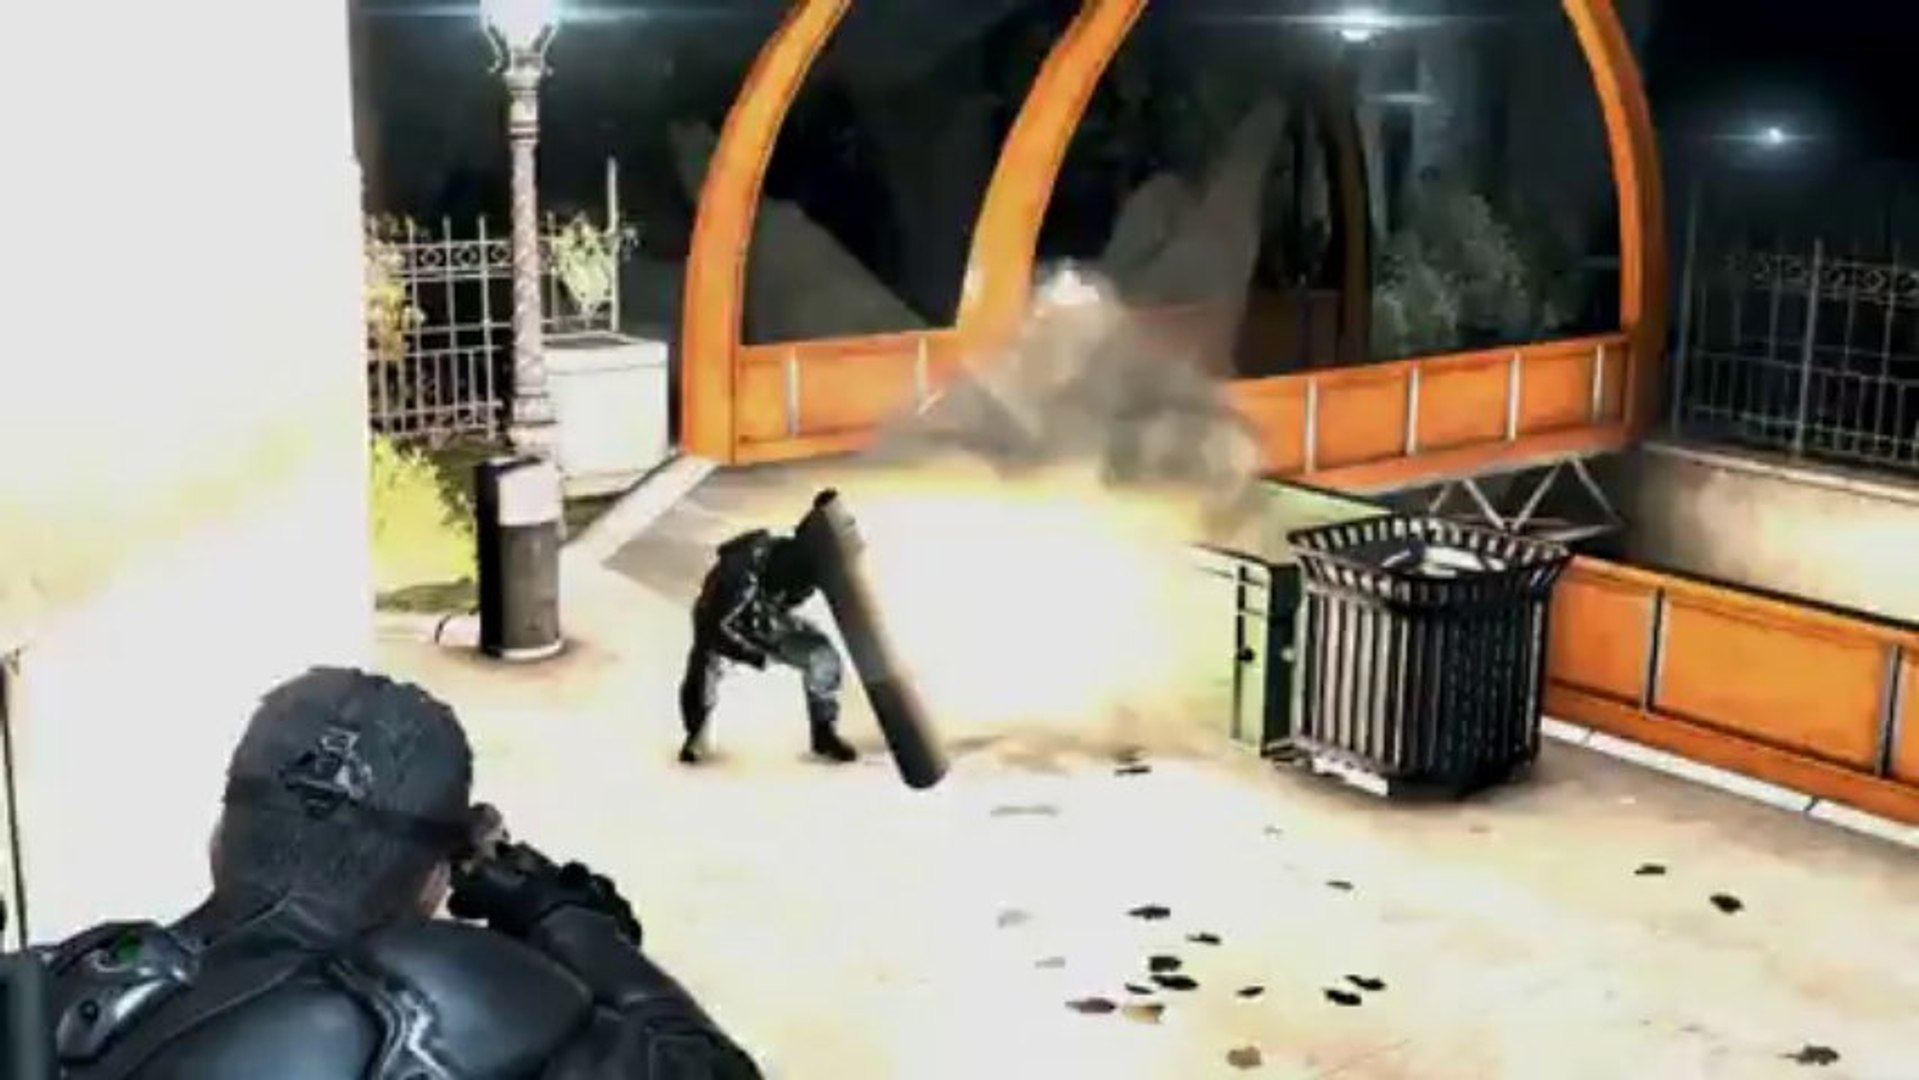 Splinter Cell Blacklist - Transformation Trailer